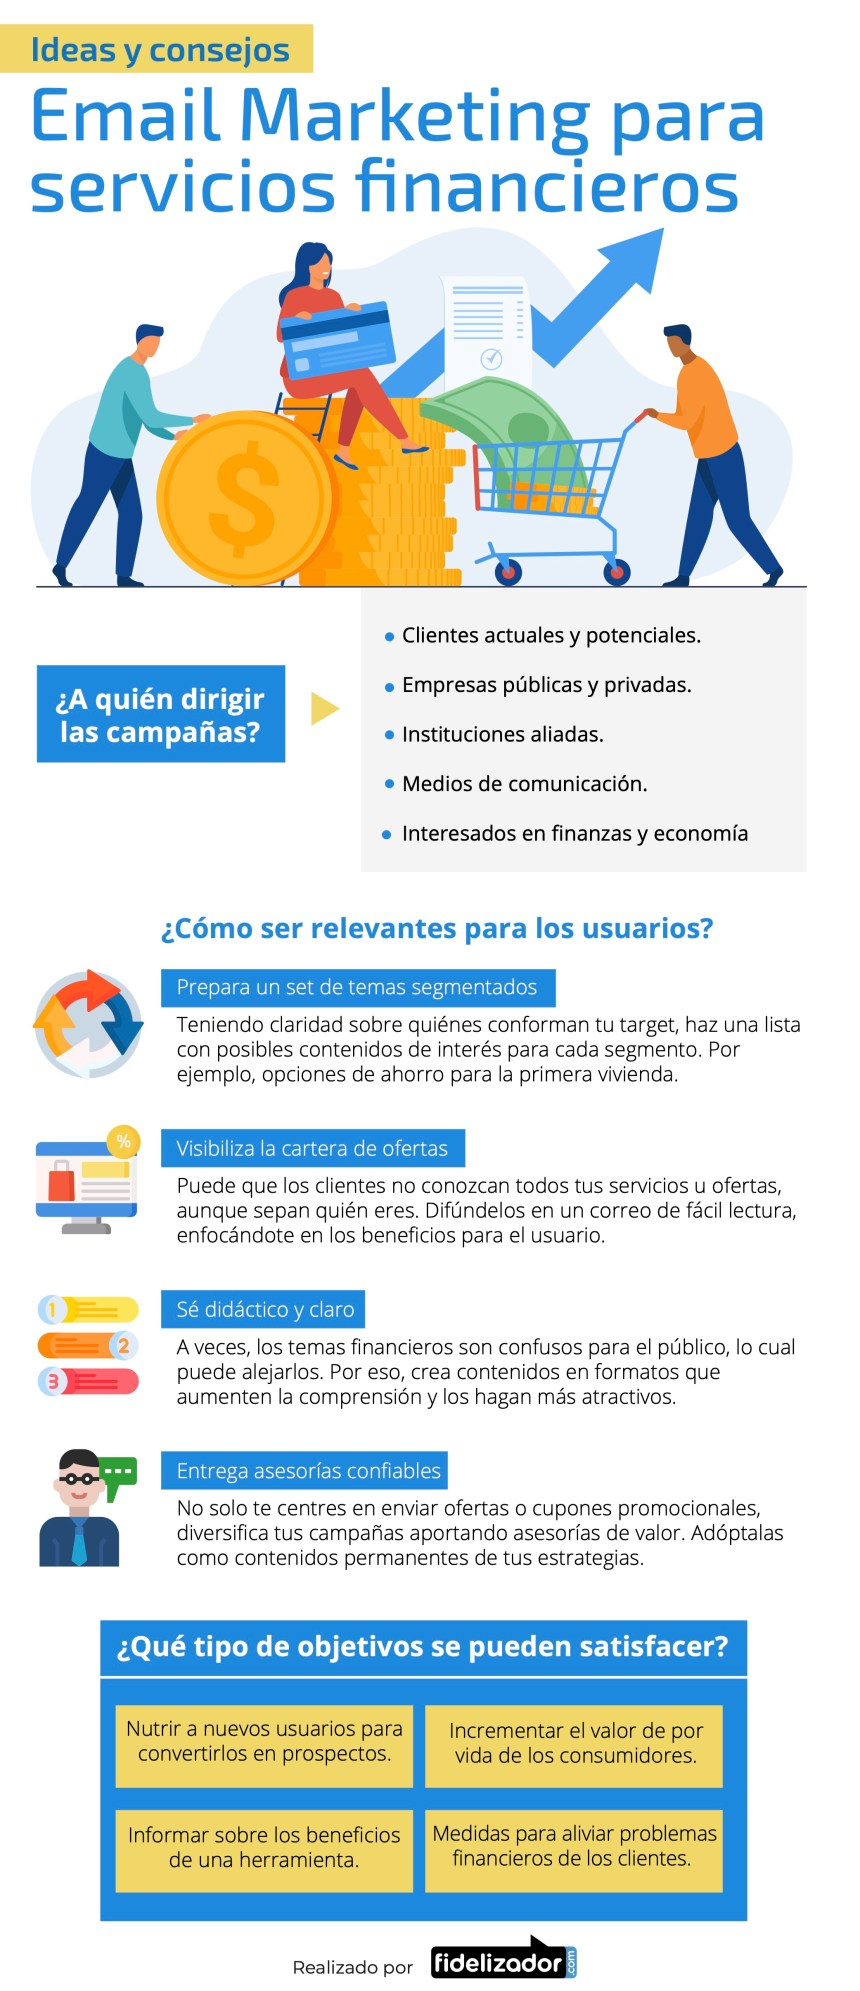 Email marketing para servicios financieros